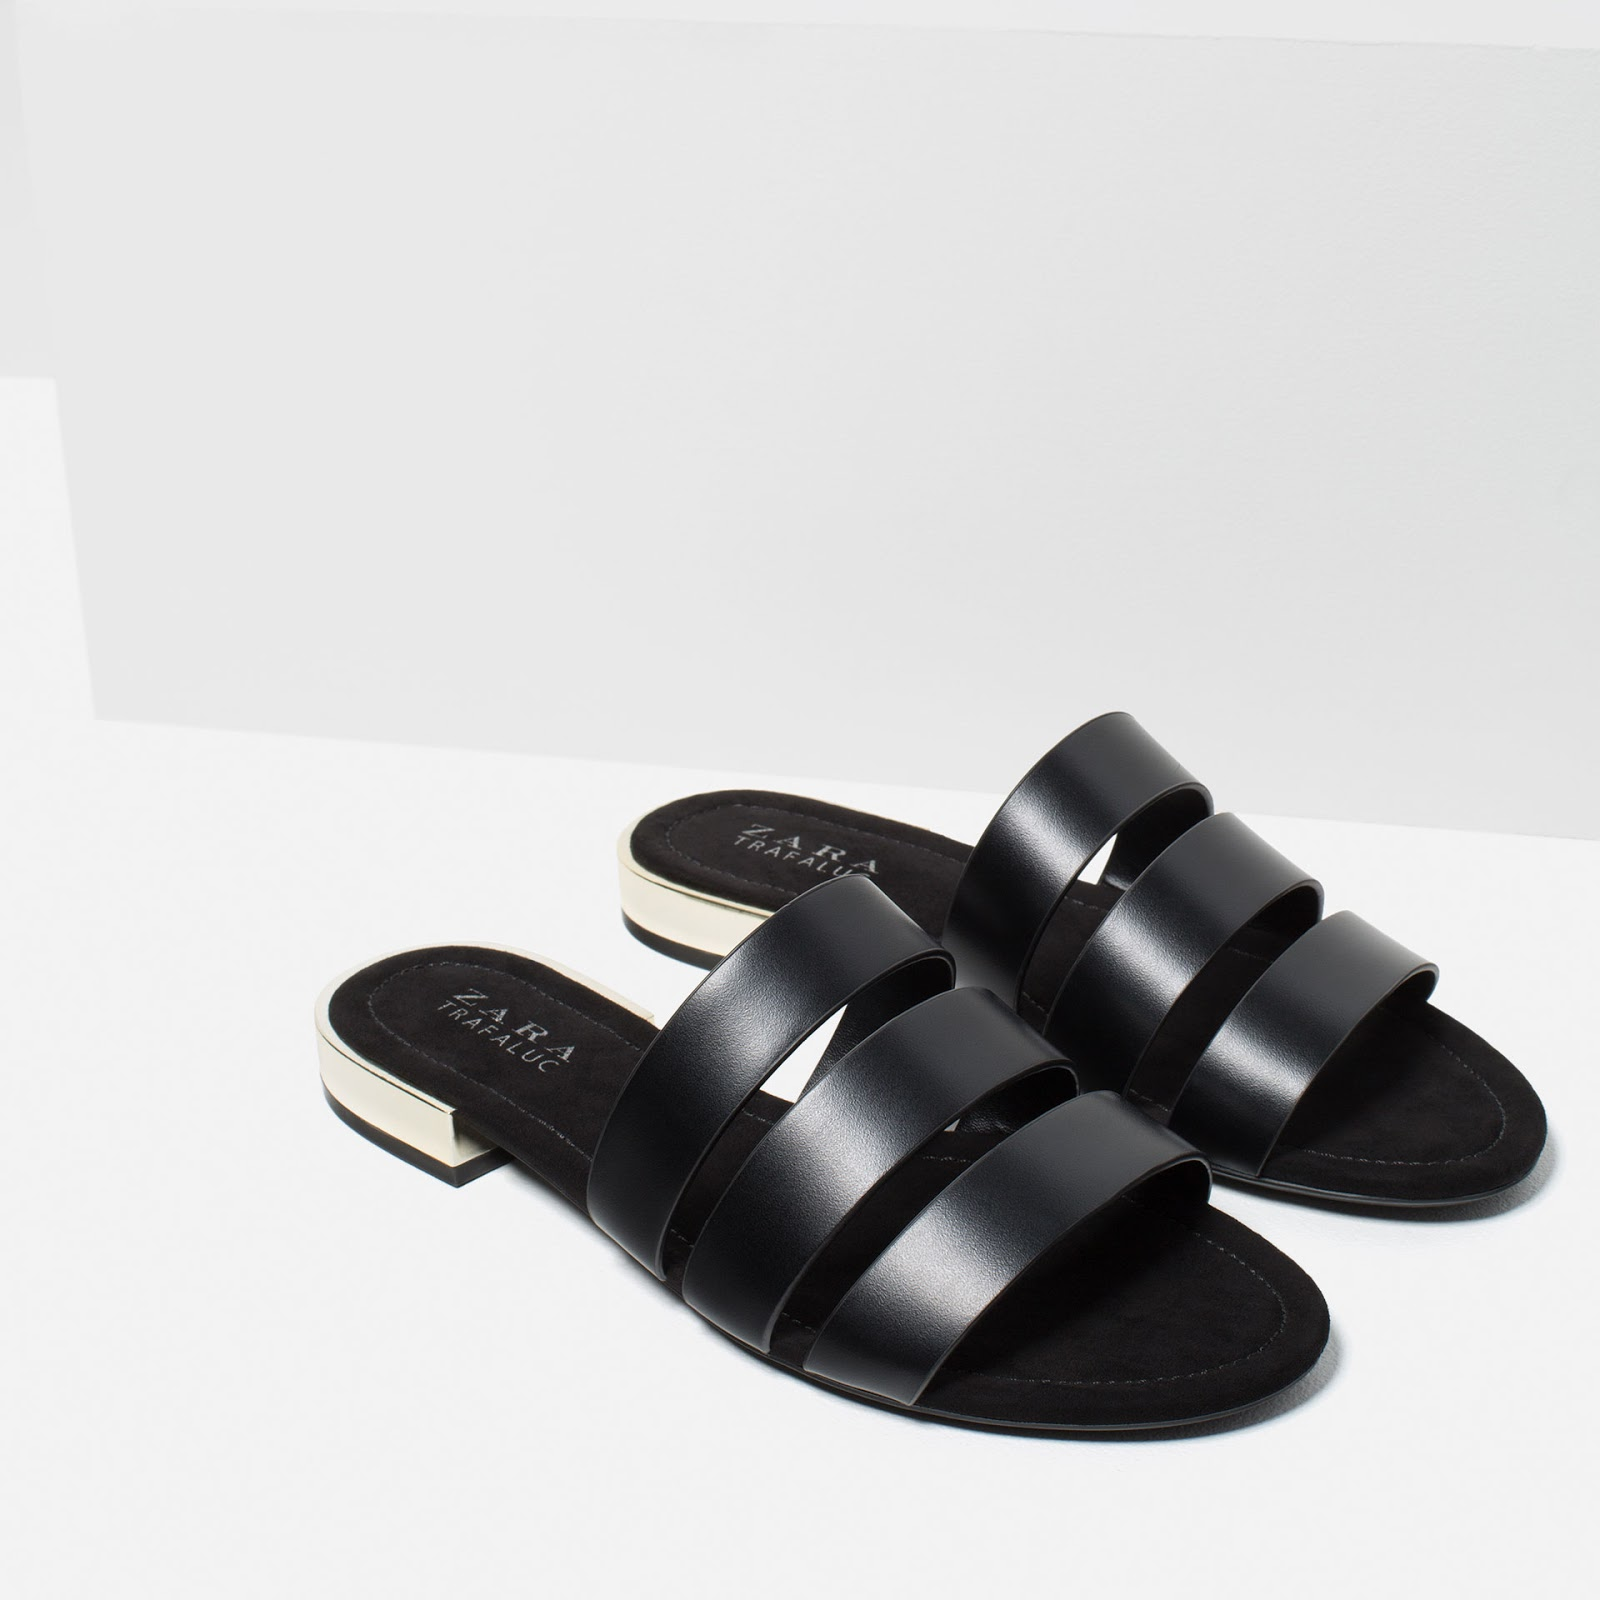 Black sandals from Zara with metal heel